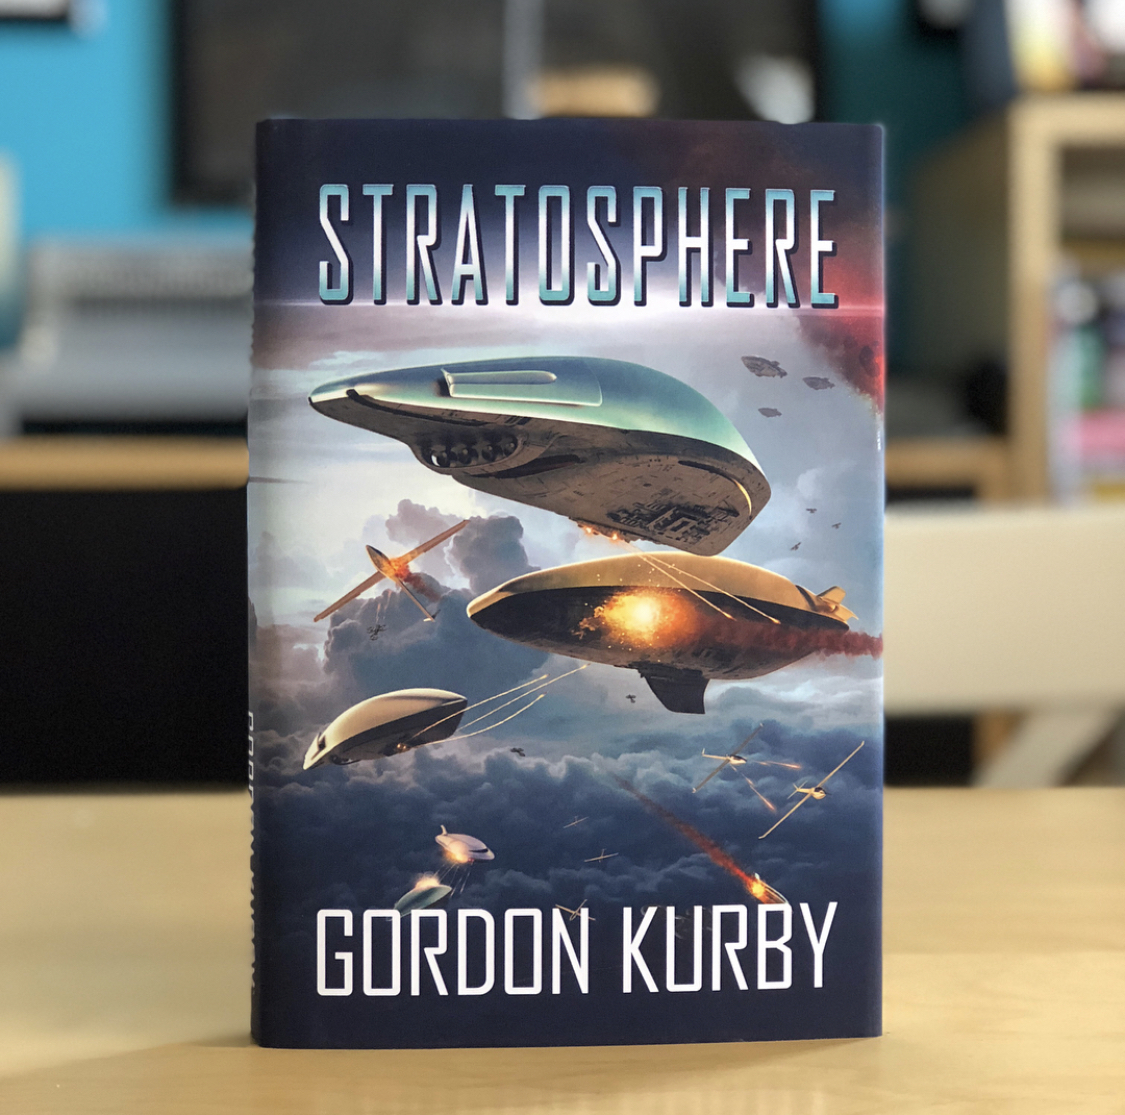 Stratosphere by Gordon Kurby